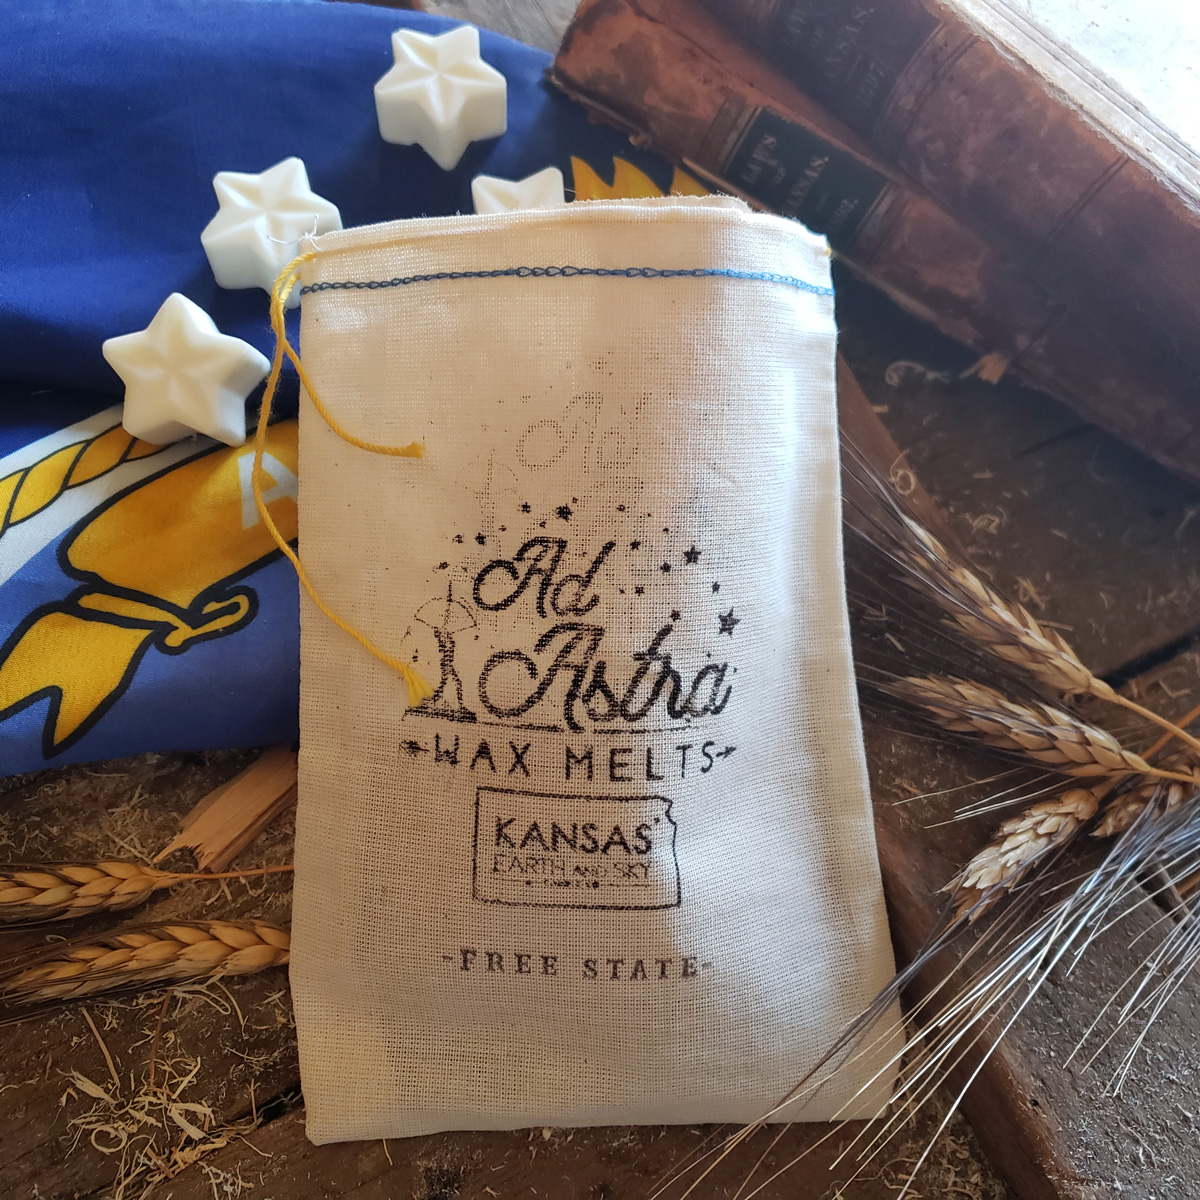 Ad Astra Wax Melts- Free State